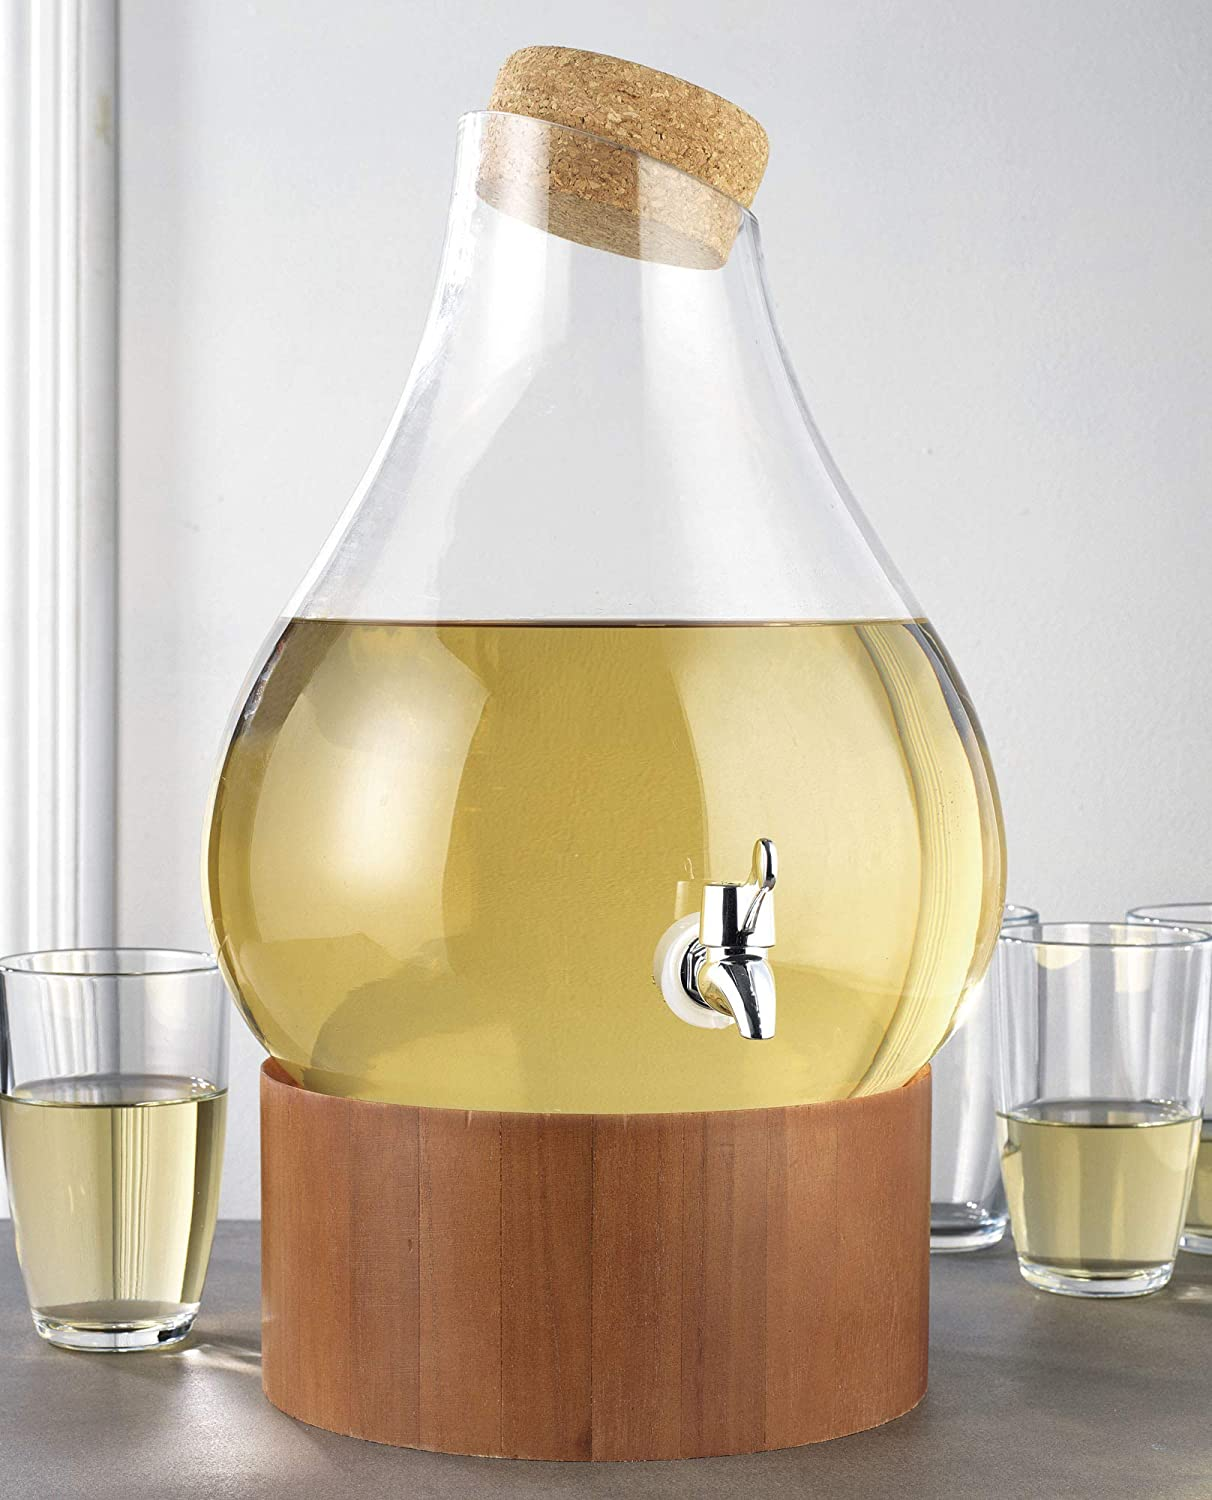 Classic Home Teardrop Clear Glass Ice Cold Beverage Drink Dispenser- 2.75 Gallon, With Cork Lid & Modern Wood Base Leak Proof Spigot- Wide Mouth Easy Filling For Outdoor, Parties & Daily Use